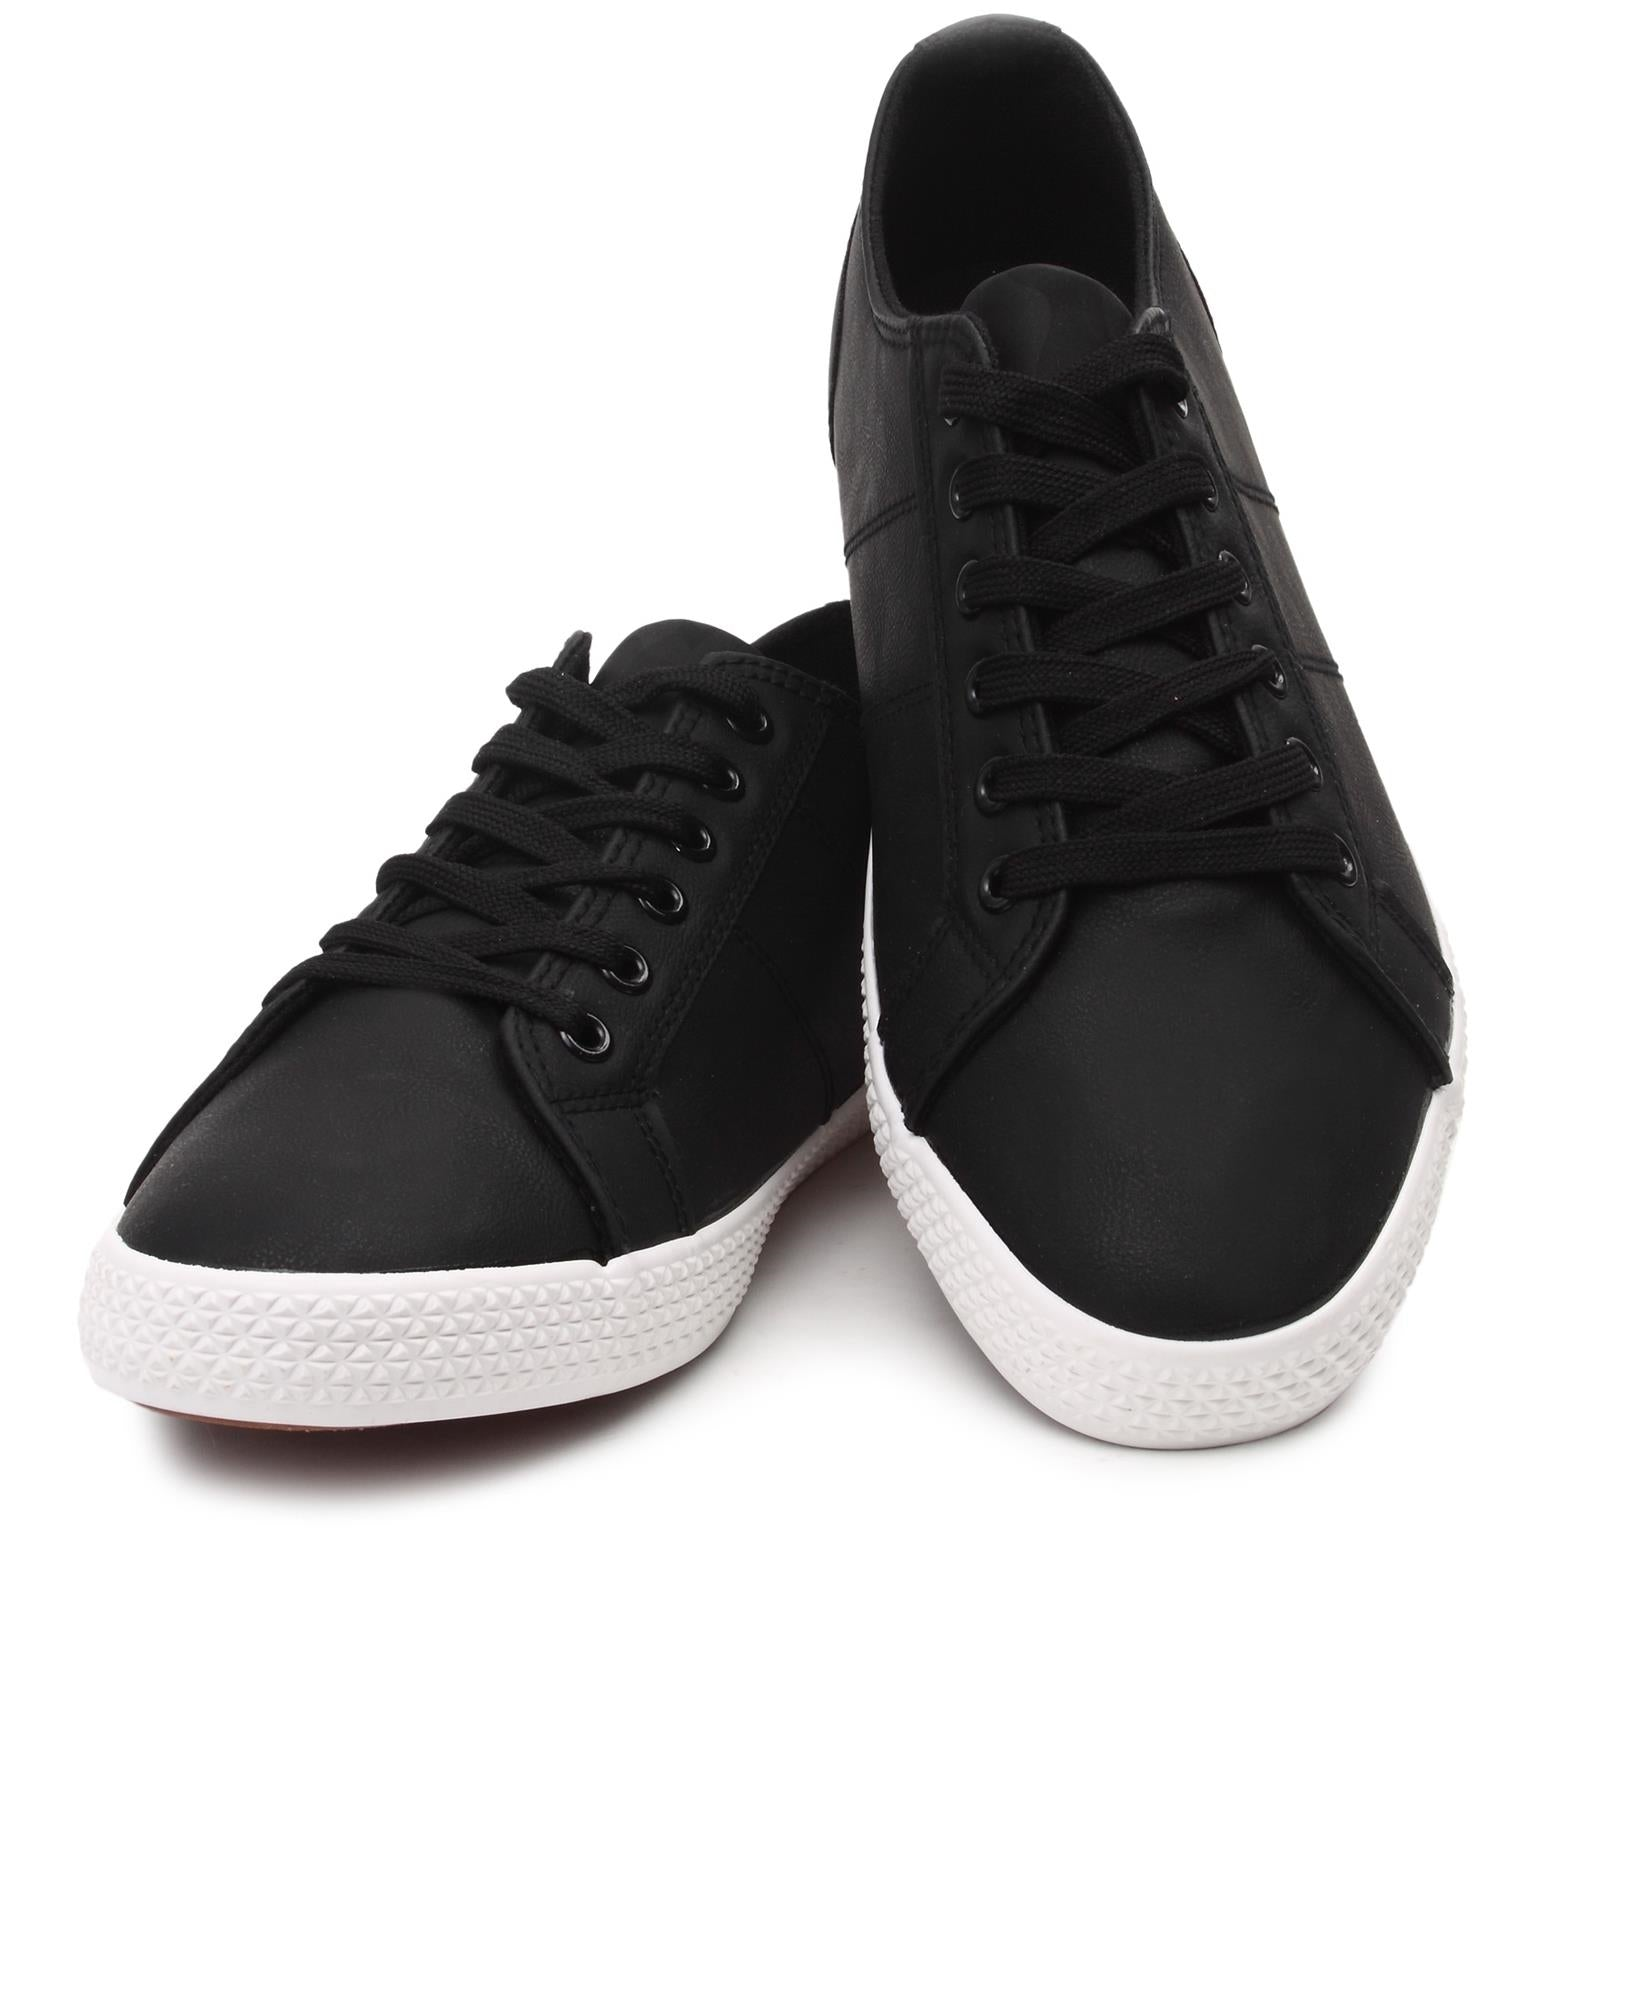 Men's Light Print Sneakers - Black